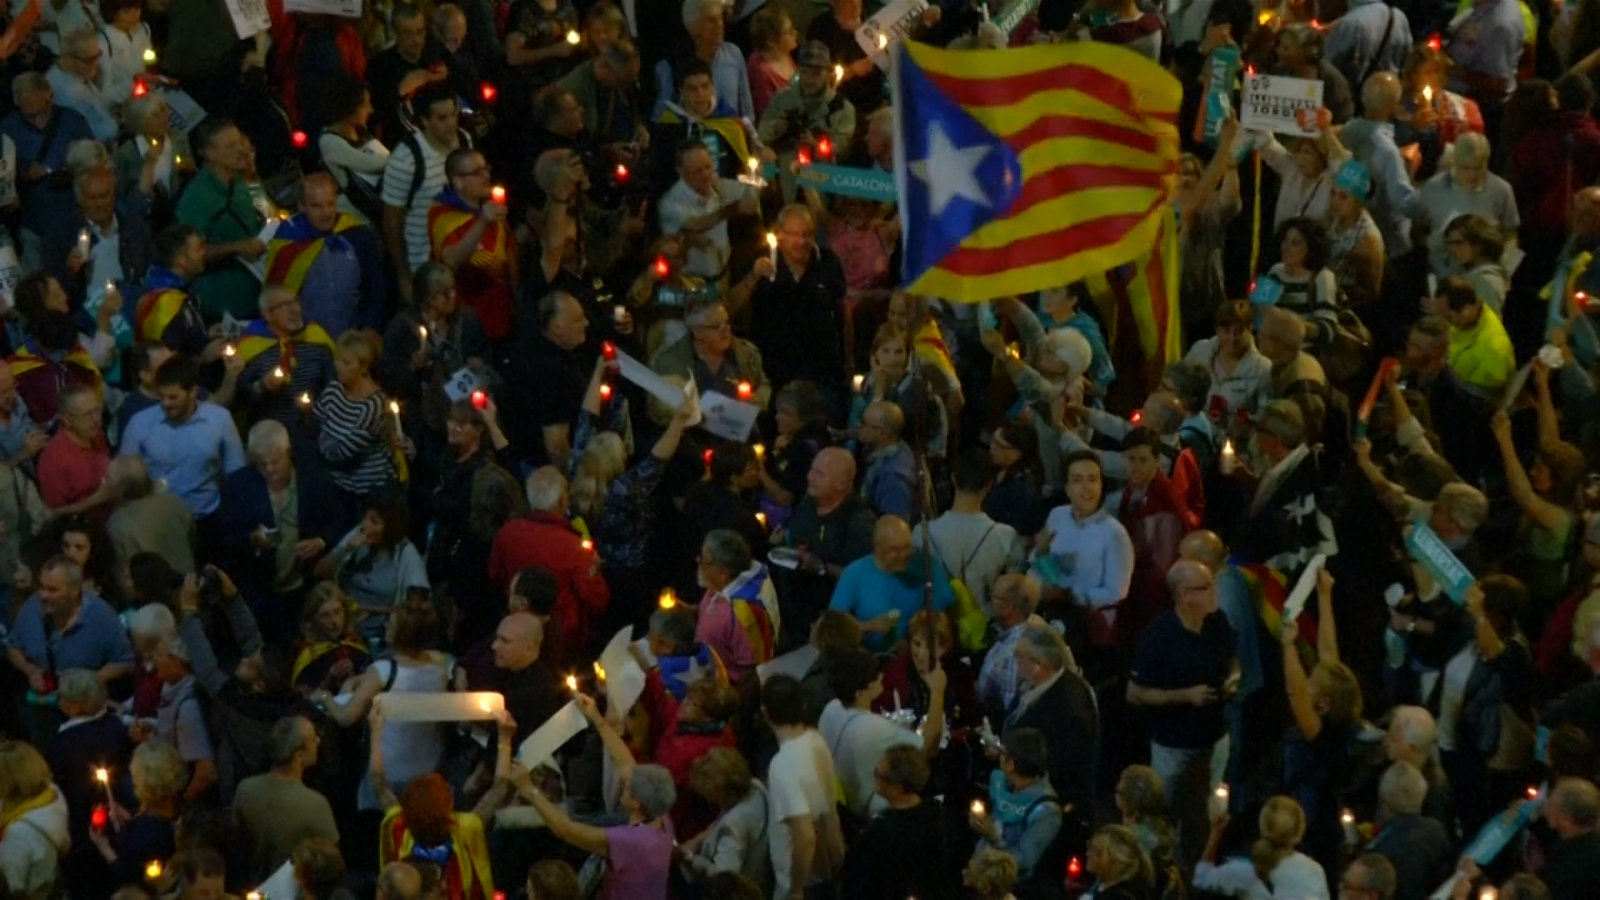 Tens of thousands rally in Barcelona as Spain's political crisis deepens